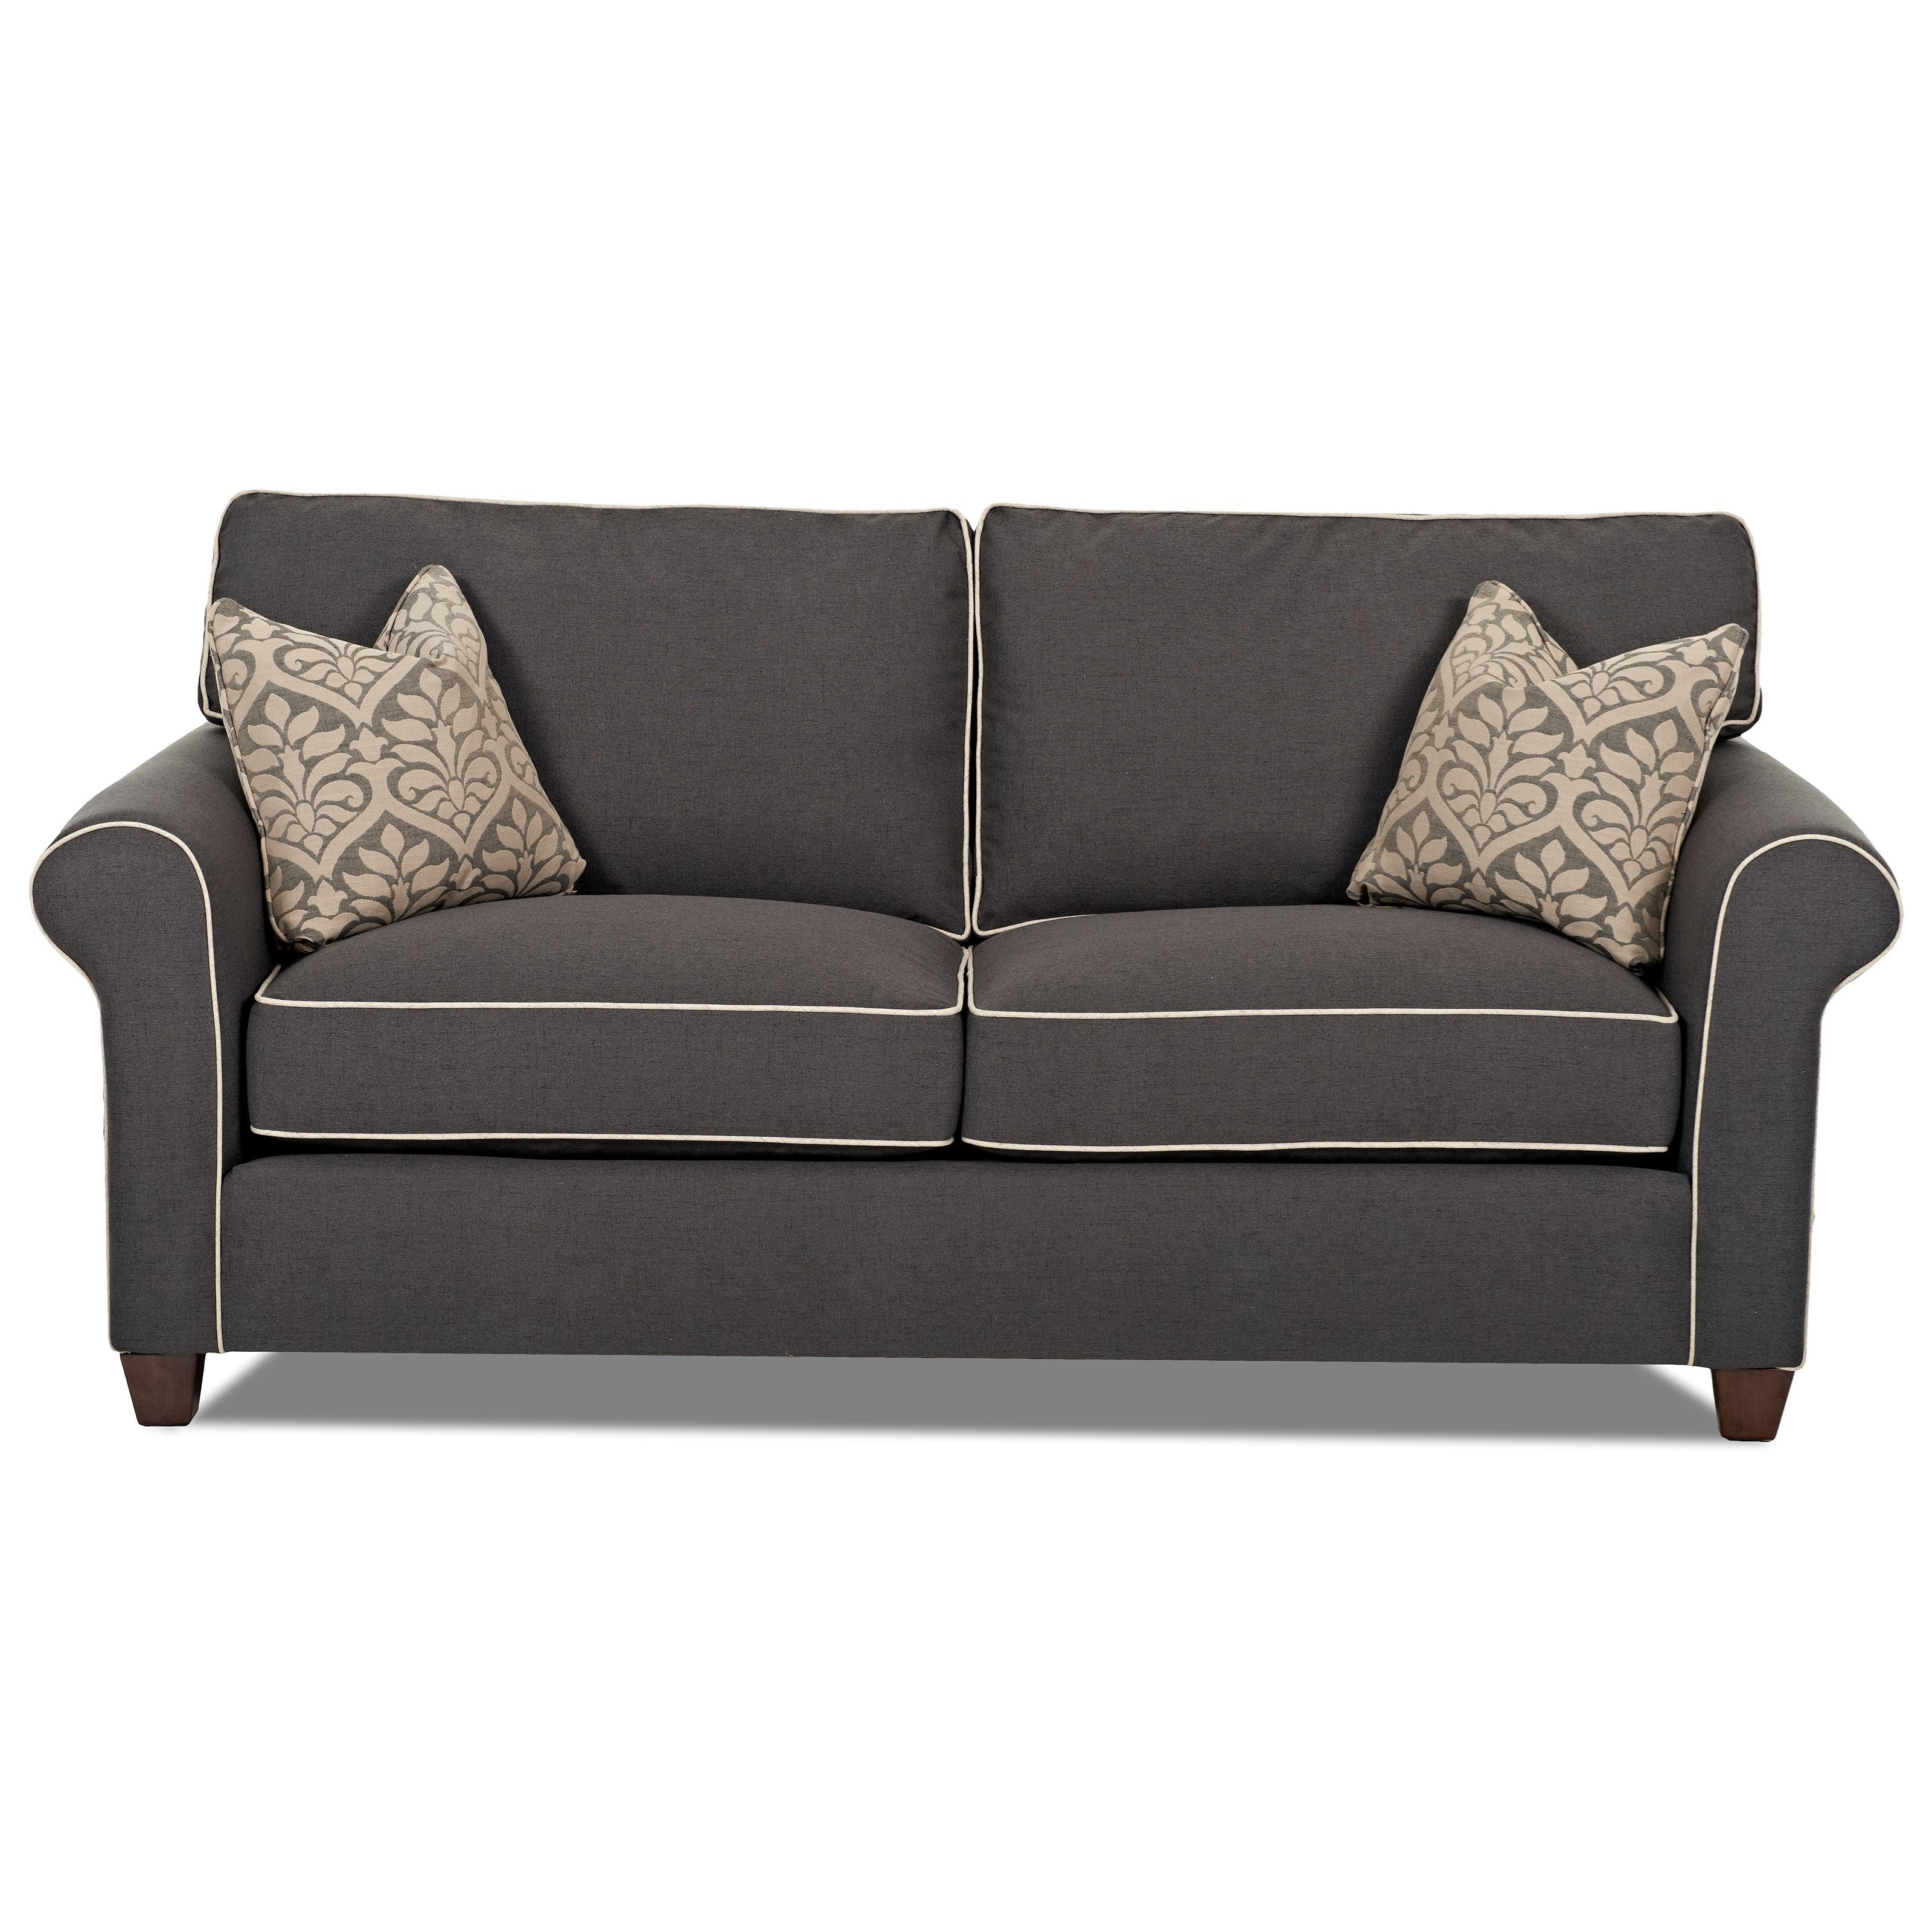 Lillington 84 Inch Sofa with Contrast Welts by Klaussner at Johnny Janosik